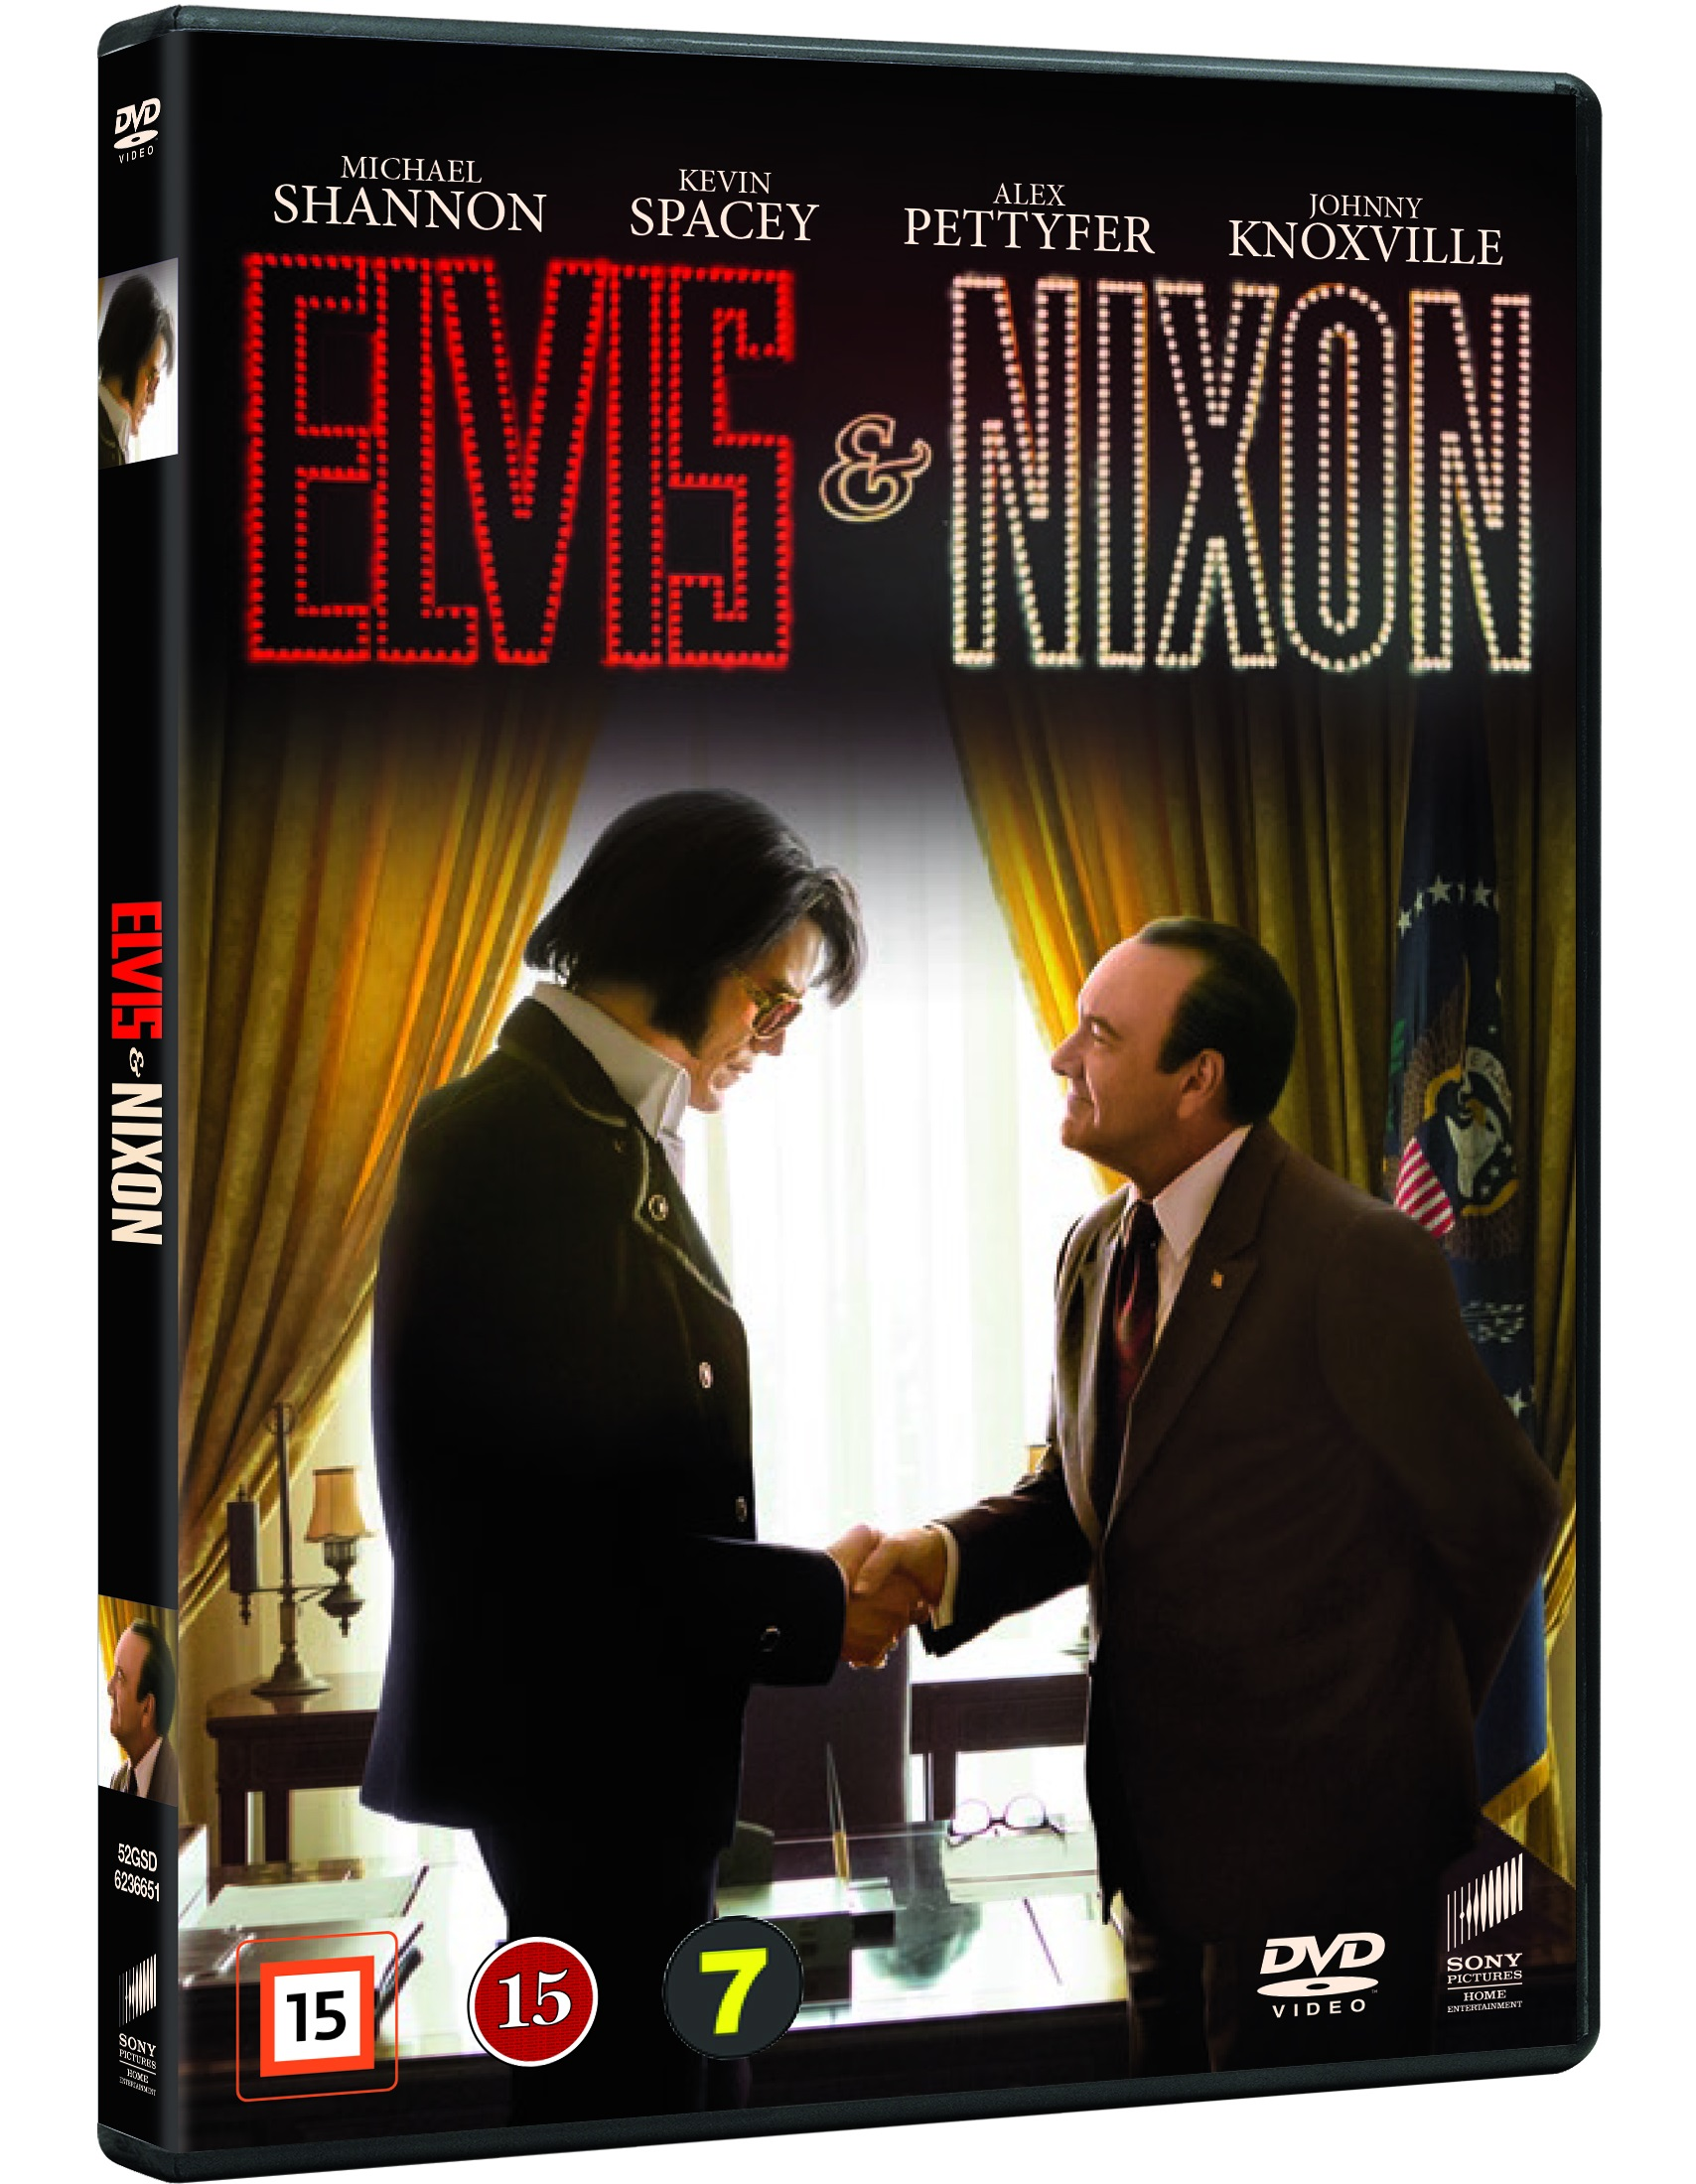 Elvis & Nixon - Kevin Spacey / Johnny Knoxville - Film - Sony - 5051162366515 - August 4, 2016